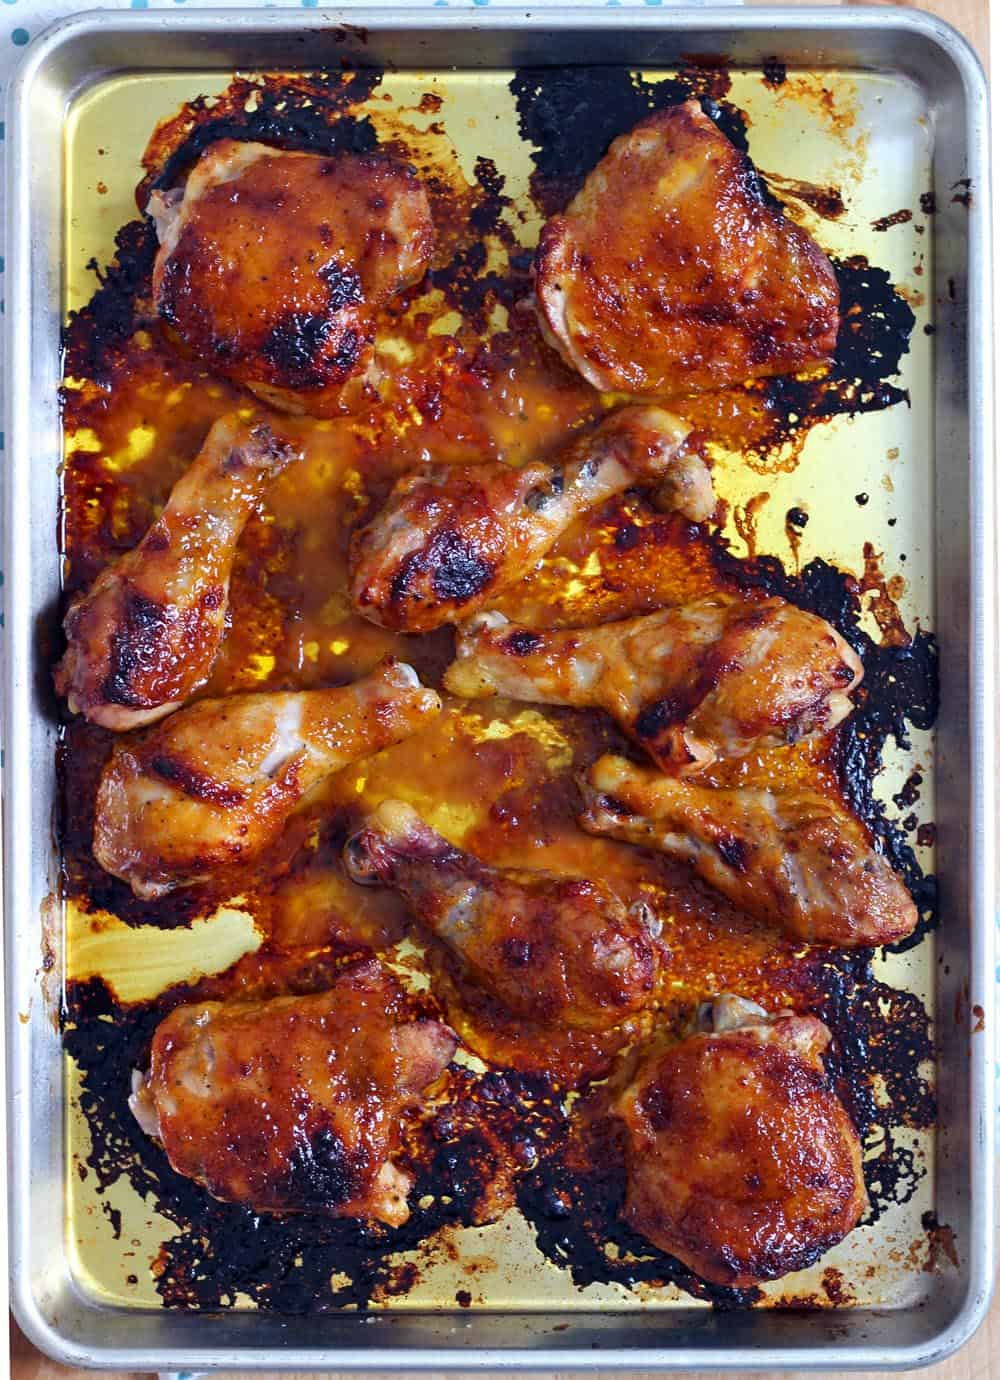 What is an easy recipe for barbecue chicken?